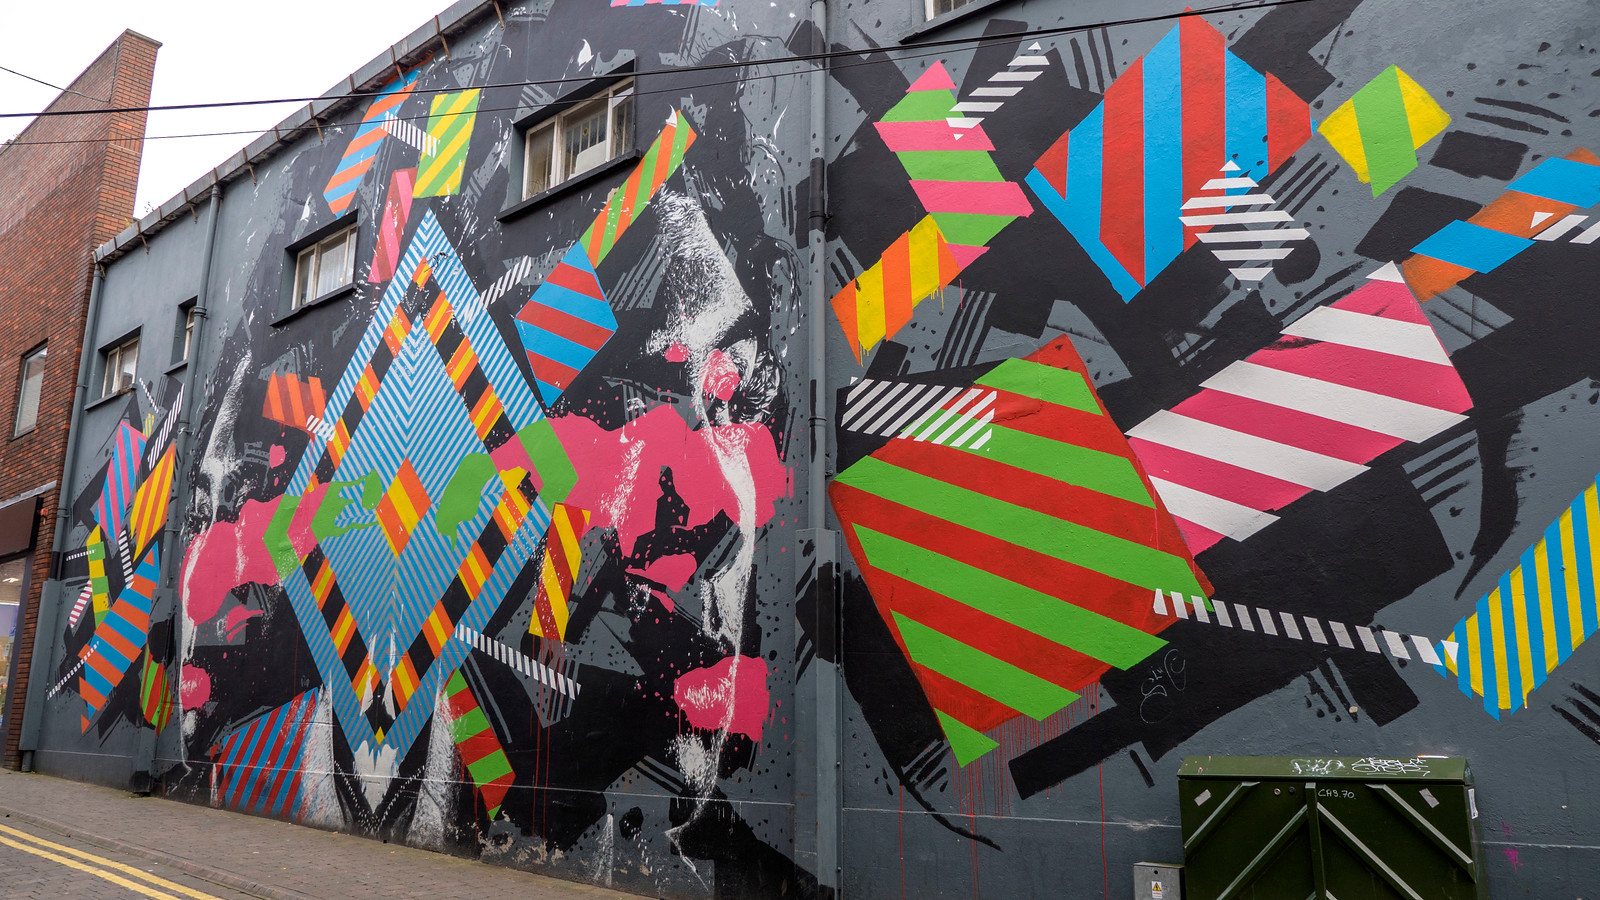 Street Art in Limerick - Awesome Things to Do in Limerick in Half a Day